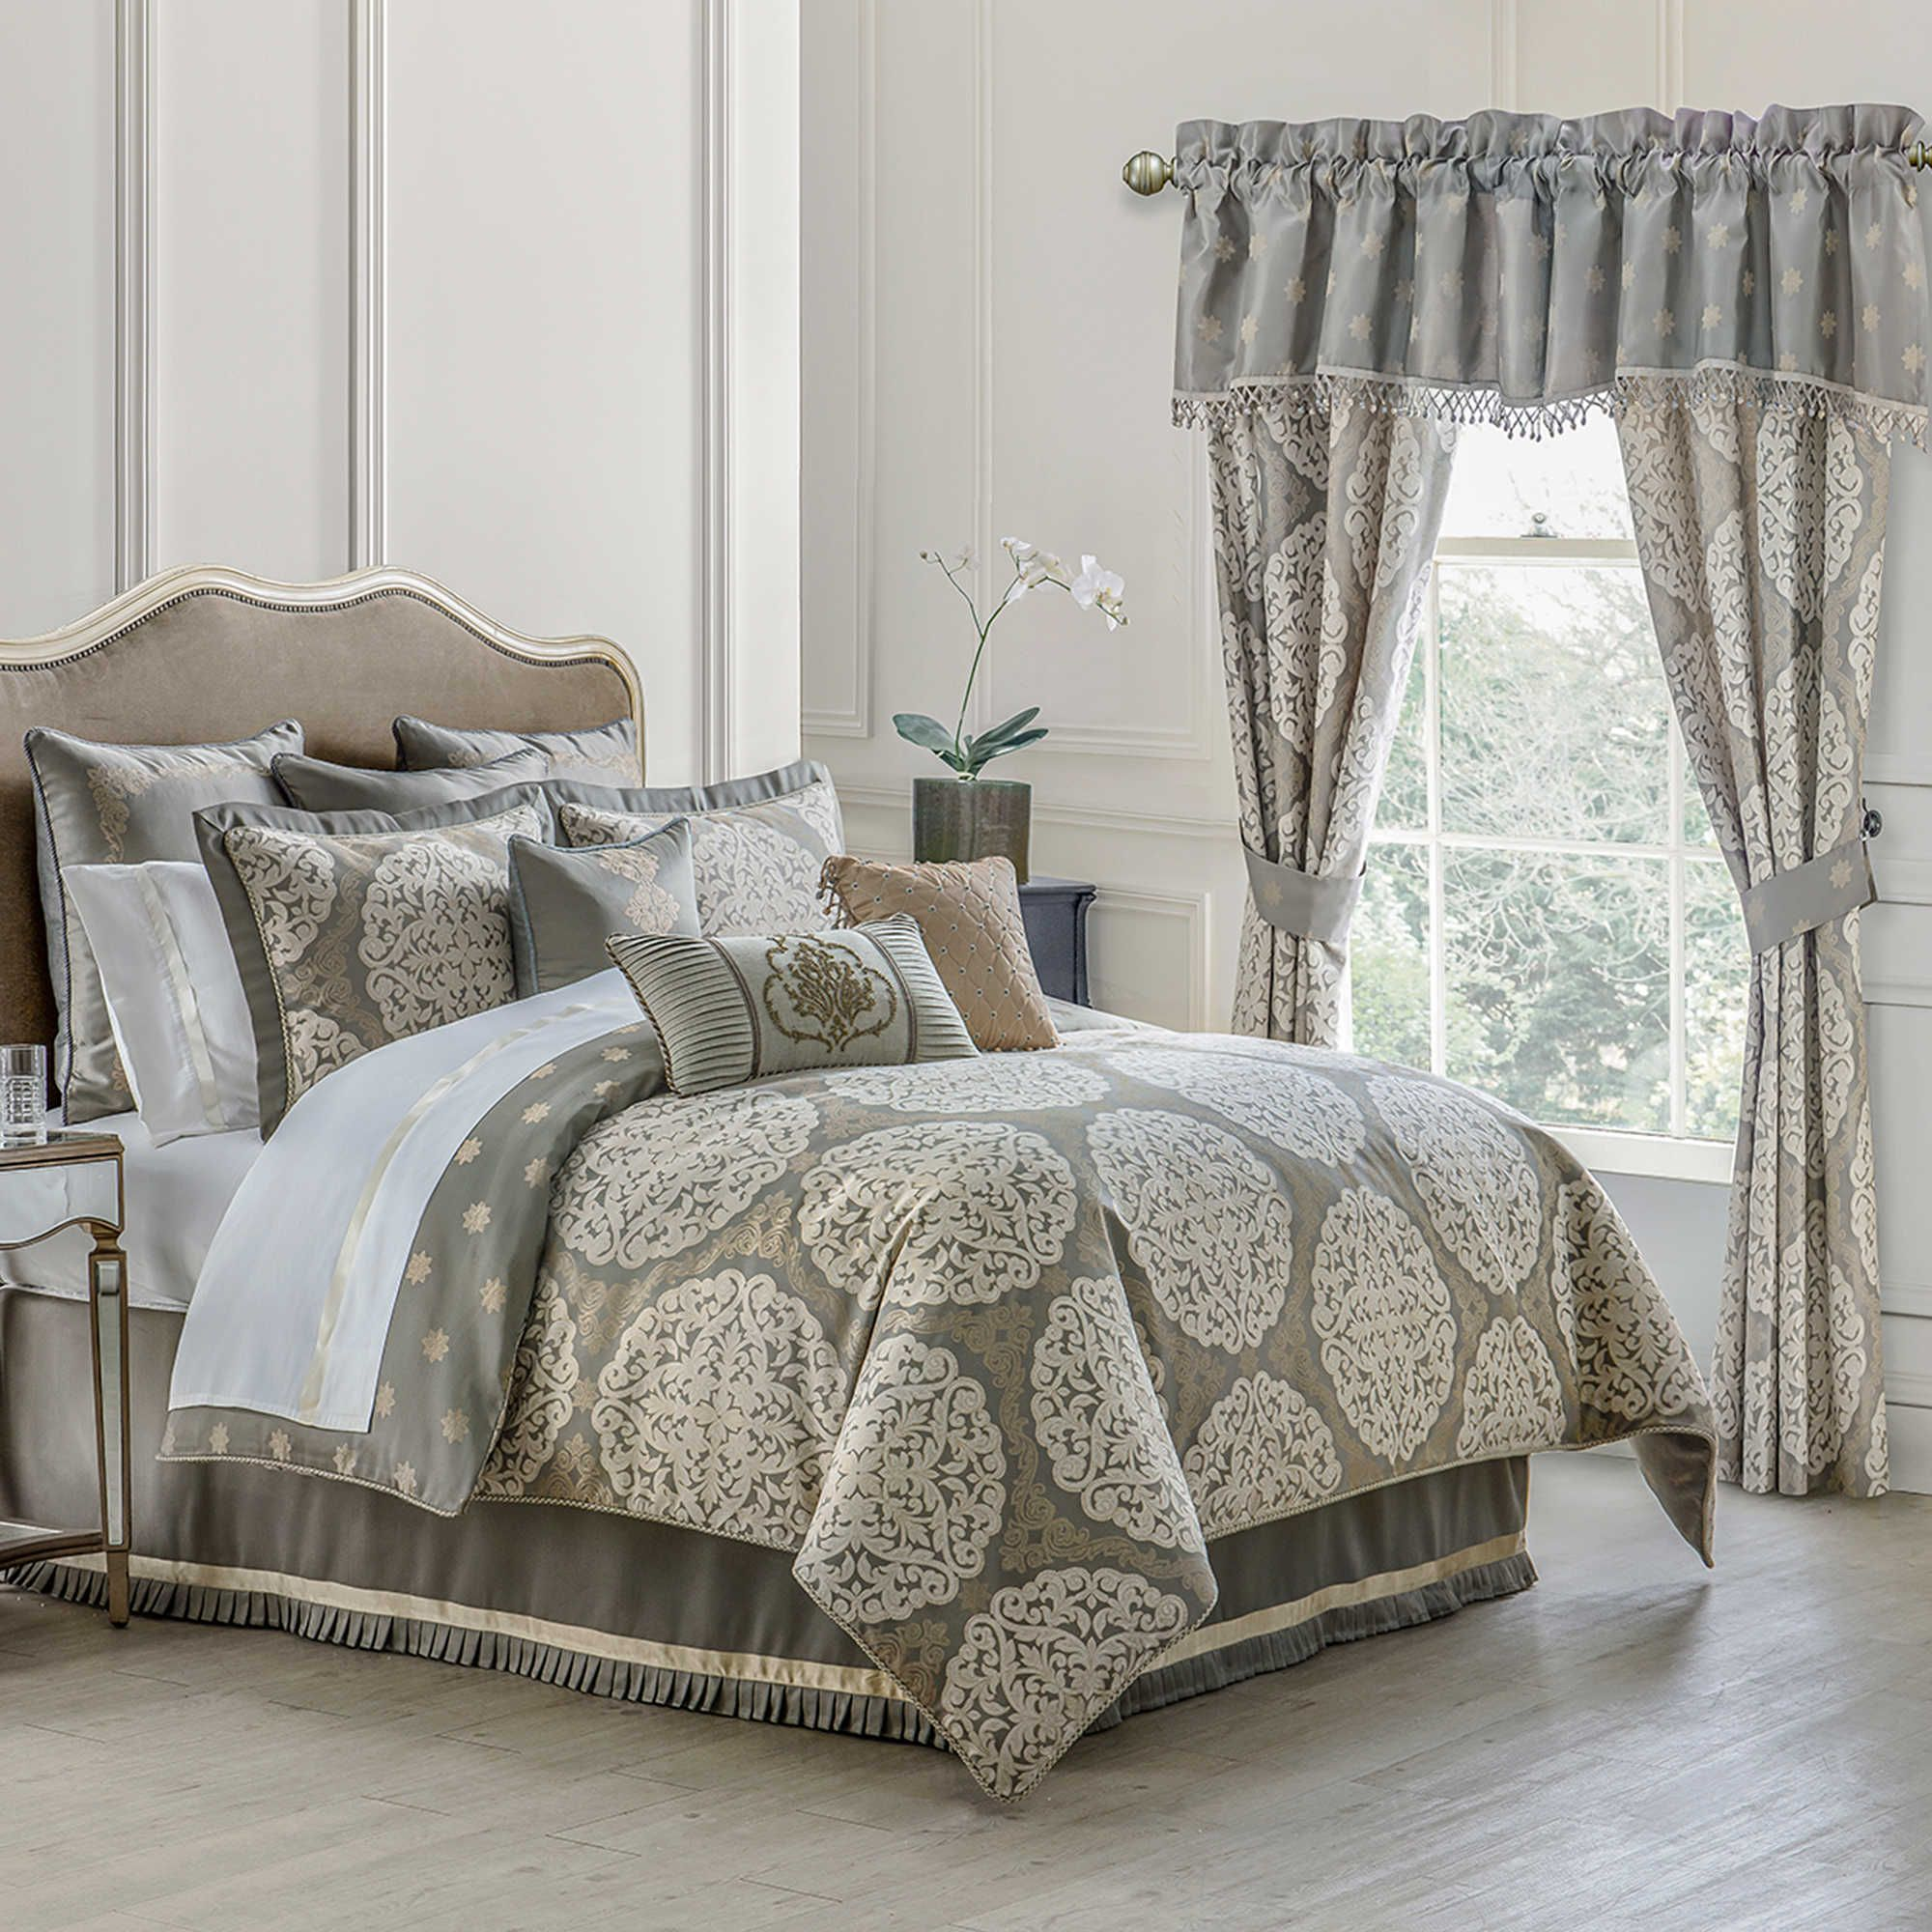 linen oversized set today bath shipping dearly chic home overstock free and silver overfilled product comforter piece bedding